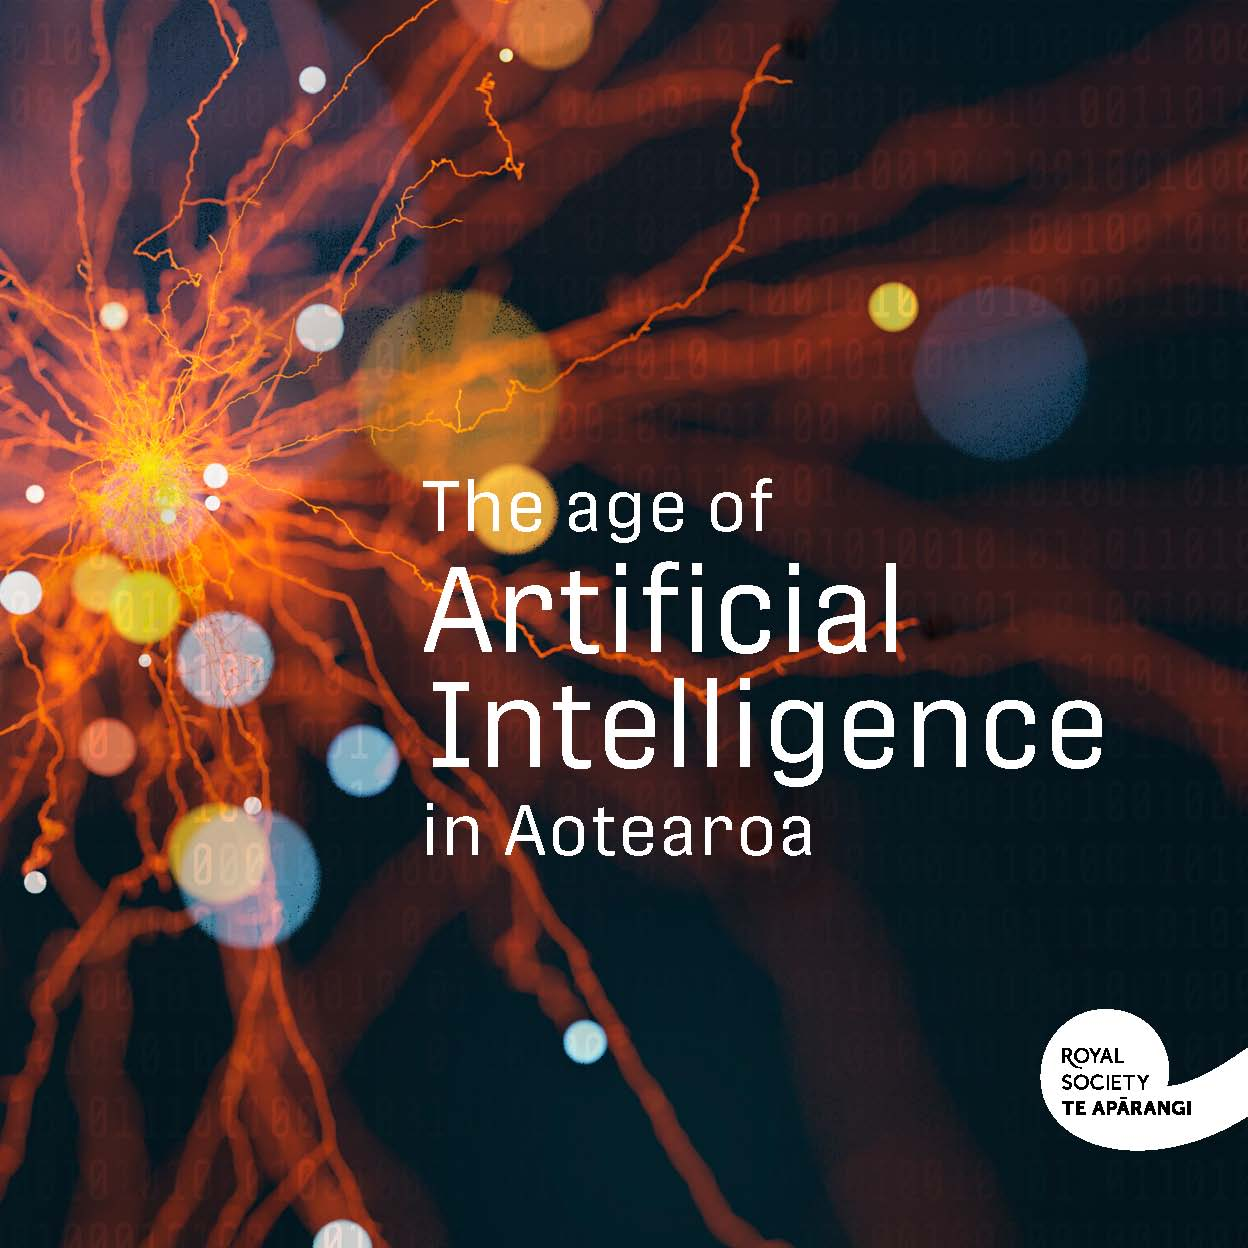 Summary: The Age of Artificial Intelligence in Aotearoa